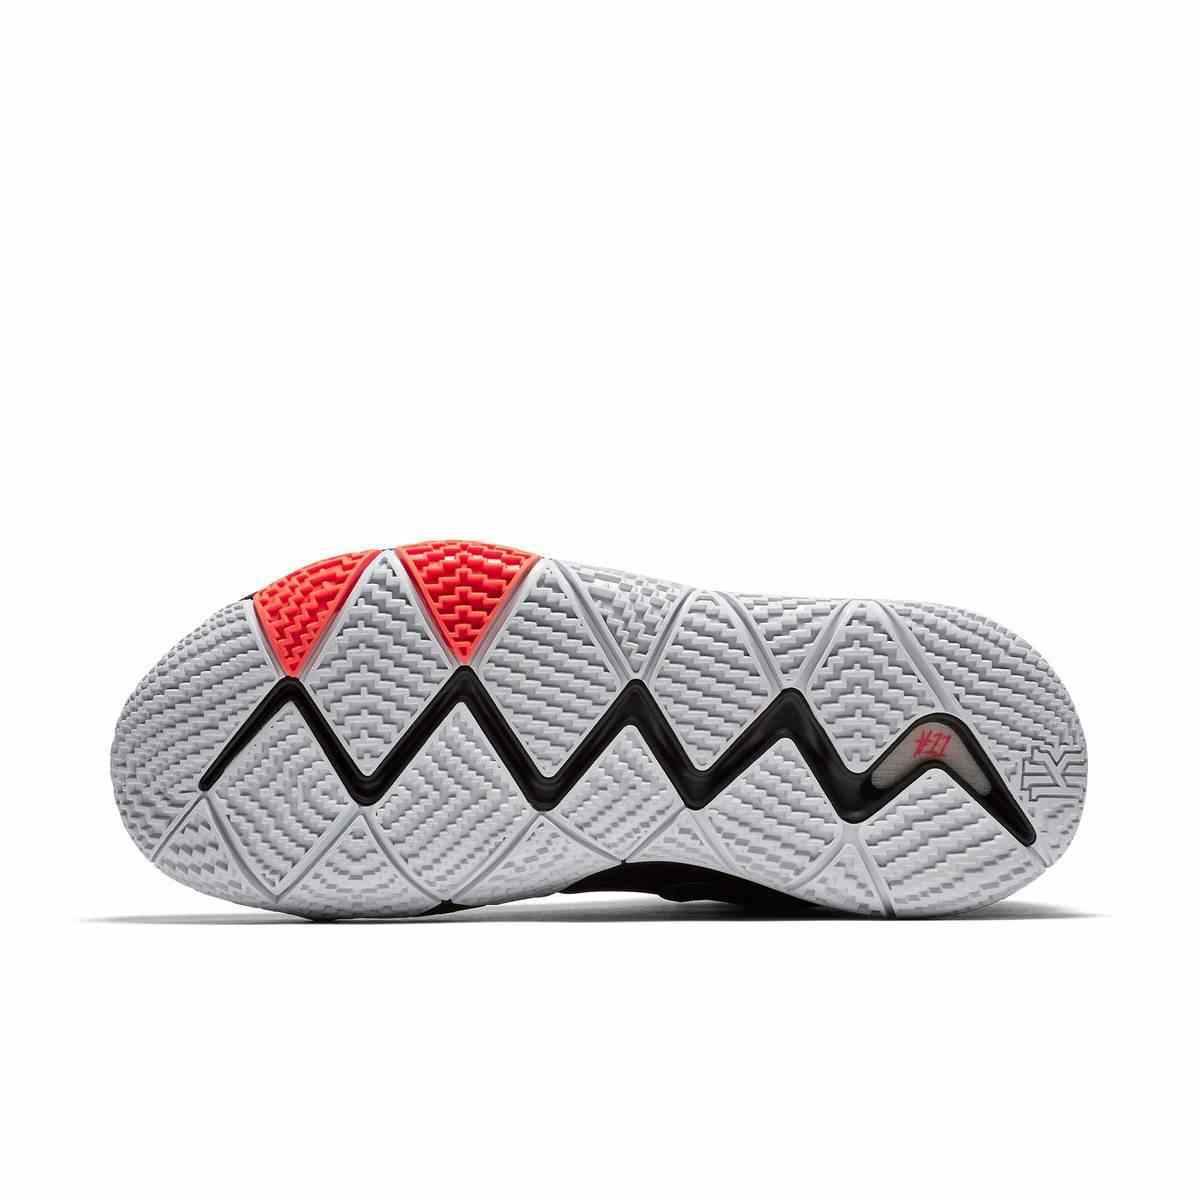 2d1df289cbf4 ... Nike New Arrival Kyrie 4 Ep Original Men Basketball Shoes Hiking Sport  Outdoor Sneakers  943807 ...